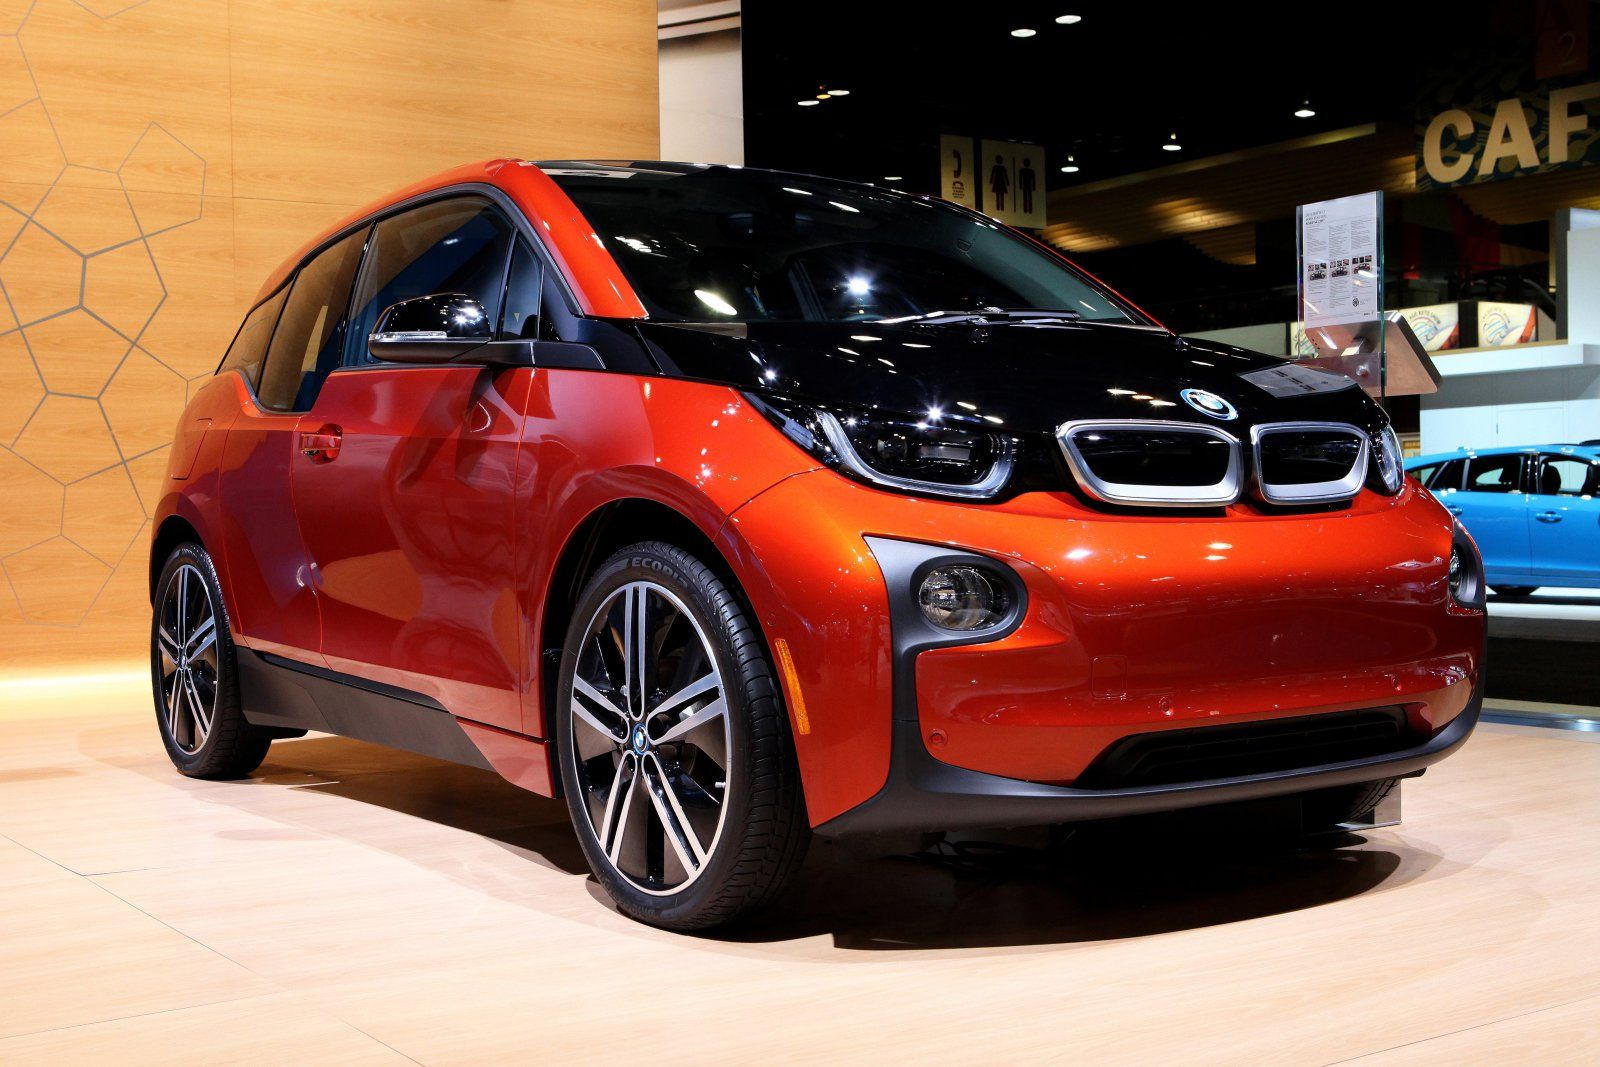 BMW reportedly unveils an i3 redesign in 2017 - https://www.aivanet.com/2016/11/bmw-reportedly-unveils-an-i3-redesign-in-2017/